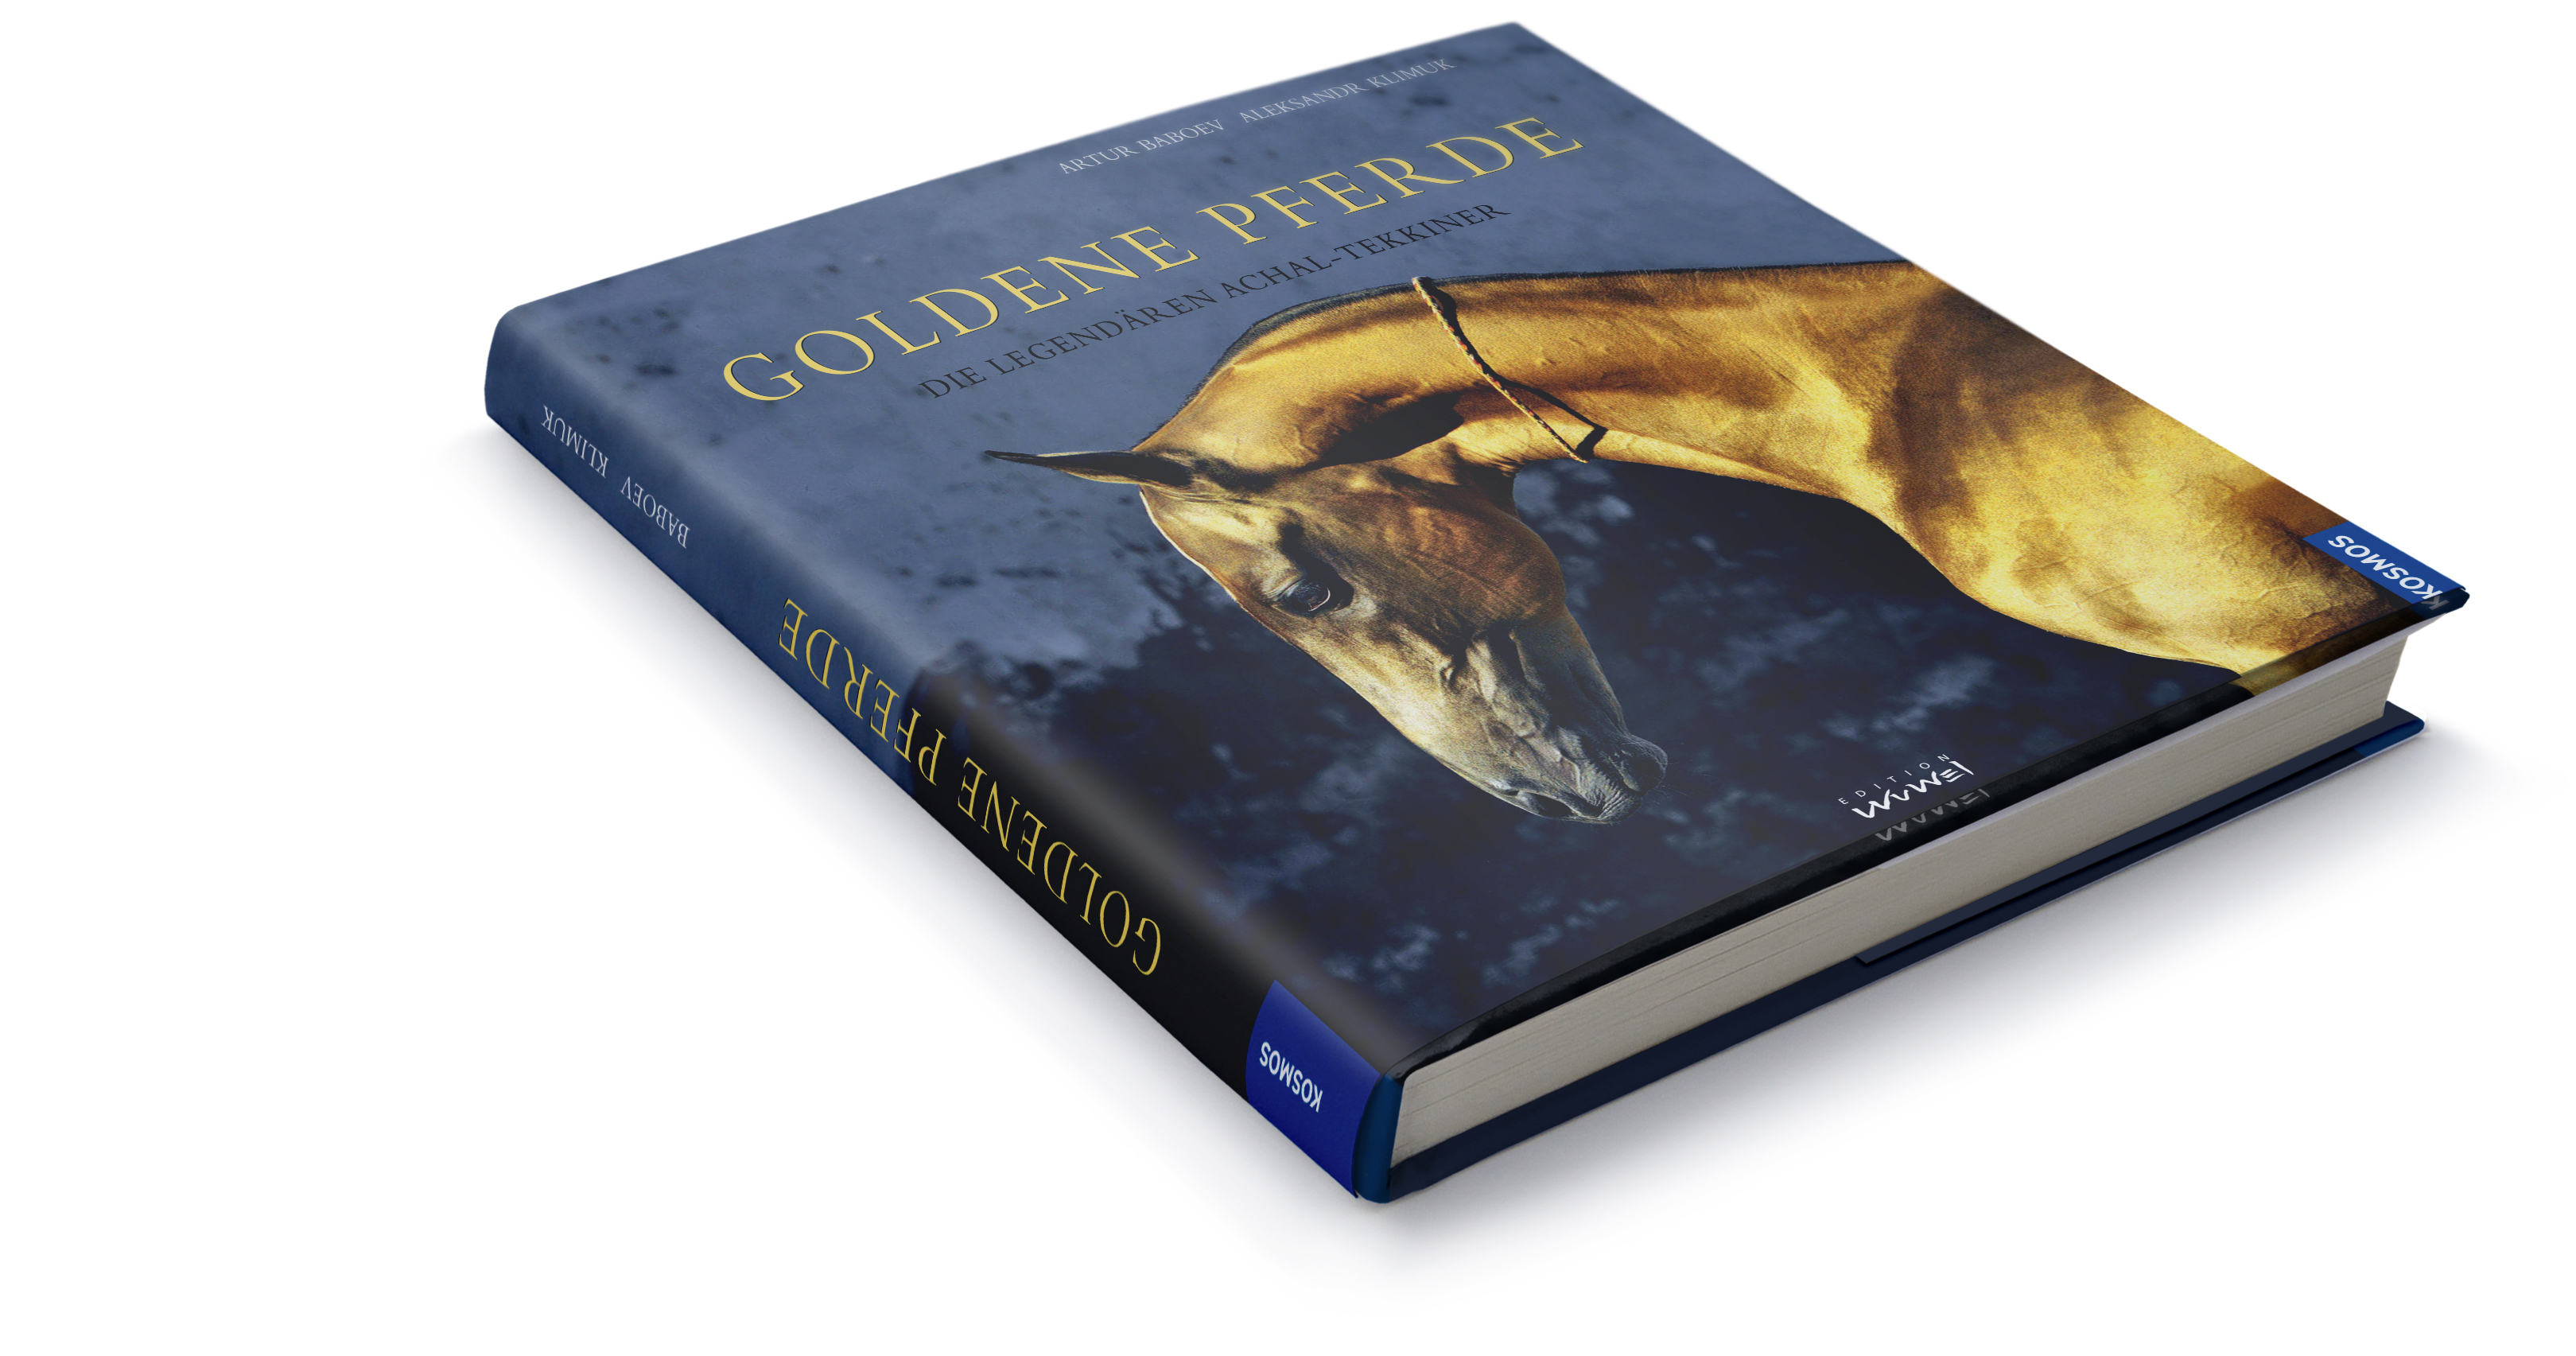 Book. Golden Pferde. German edition